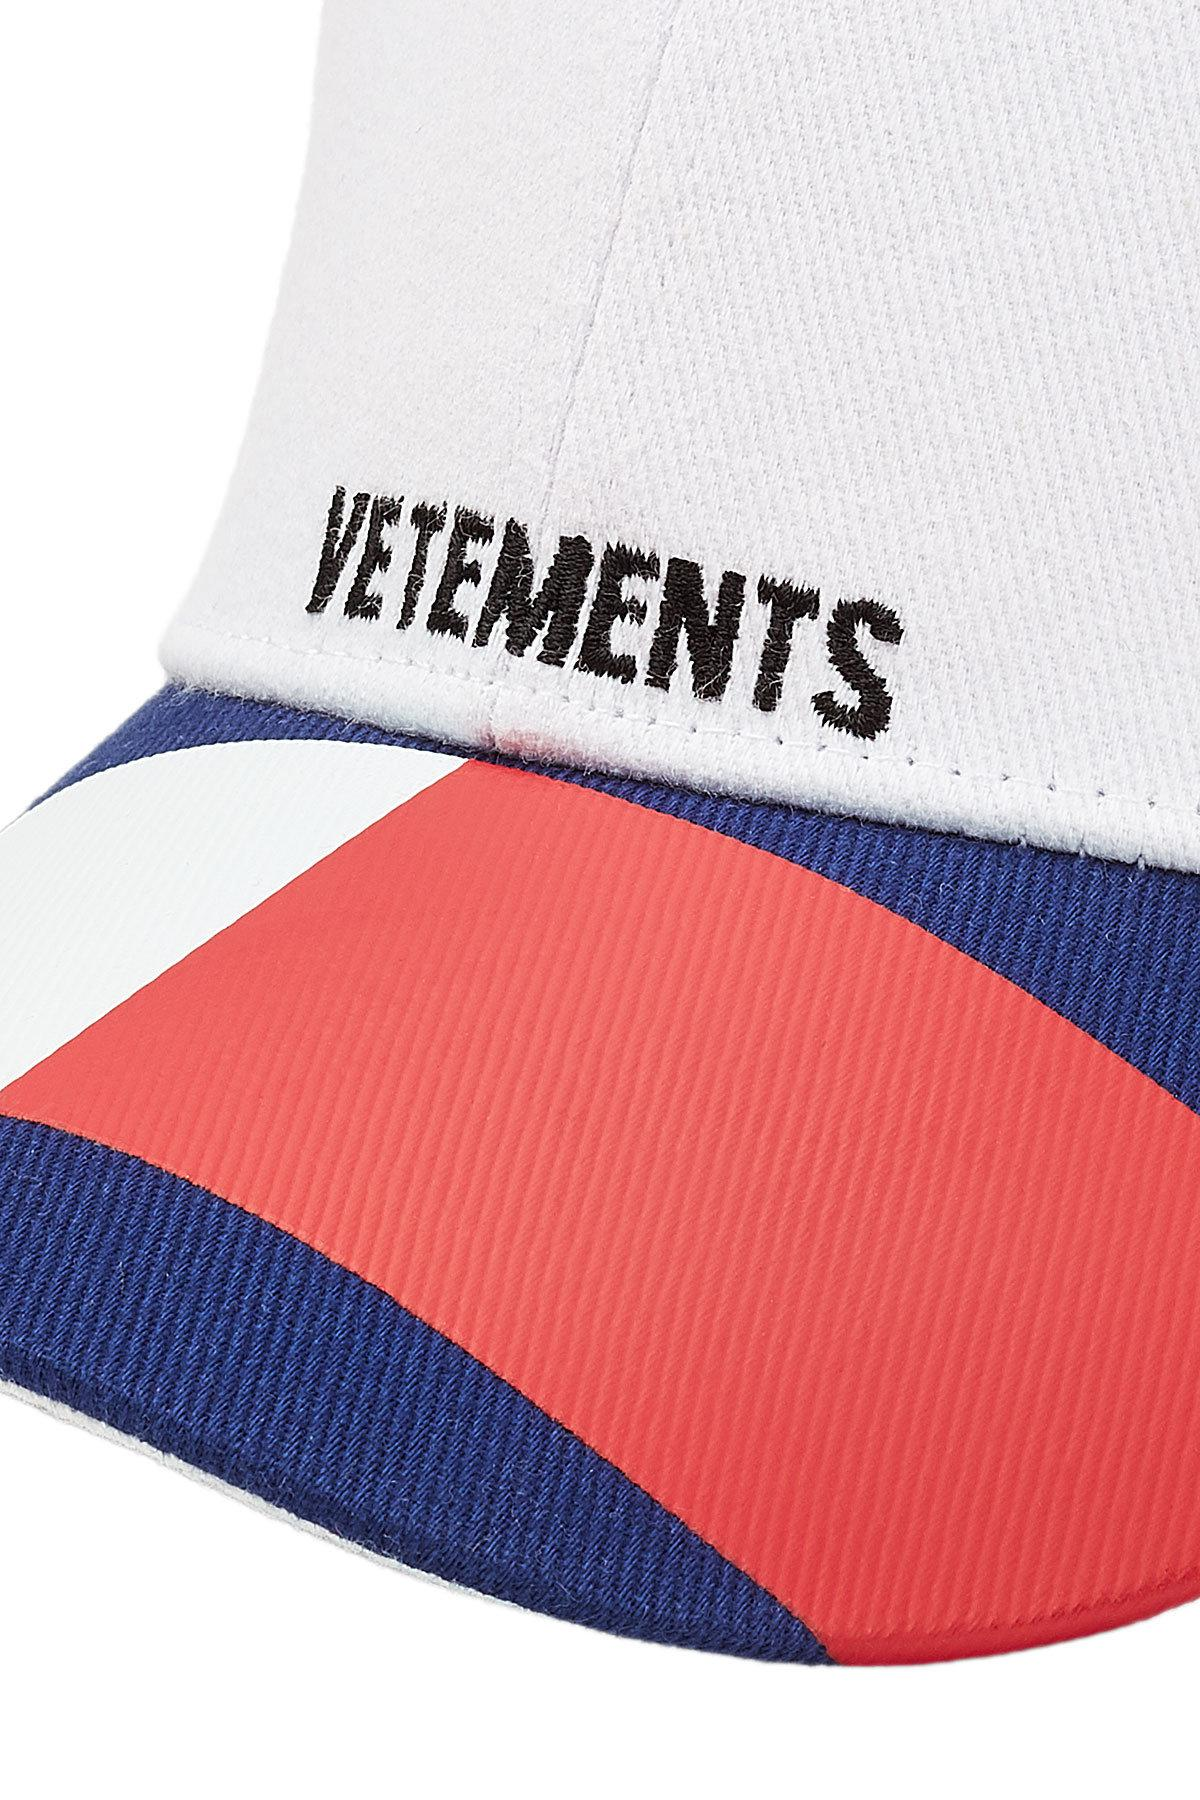 ba17418dcf0baf Vetements X Tommy Hilfiger Cotton Baseball Cap for Men - Lyst